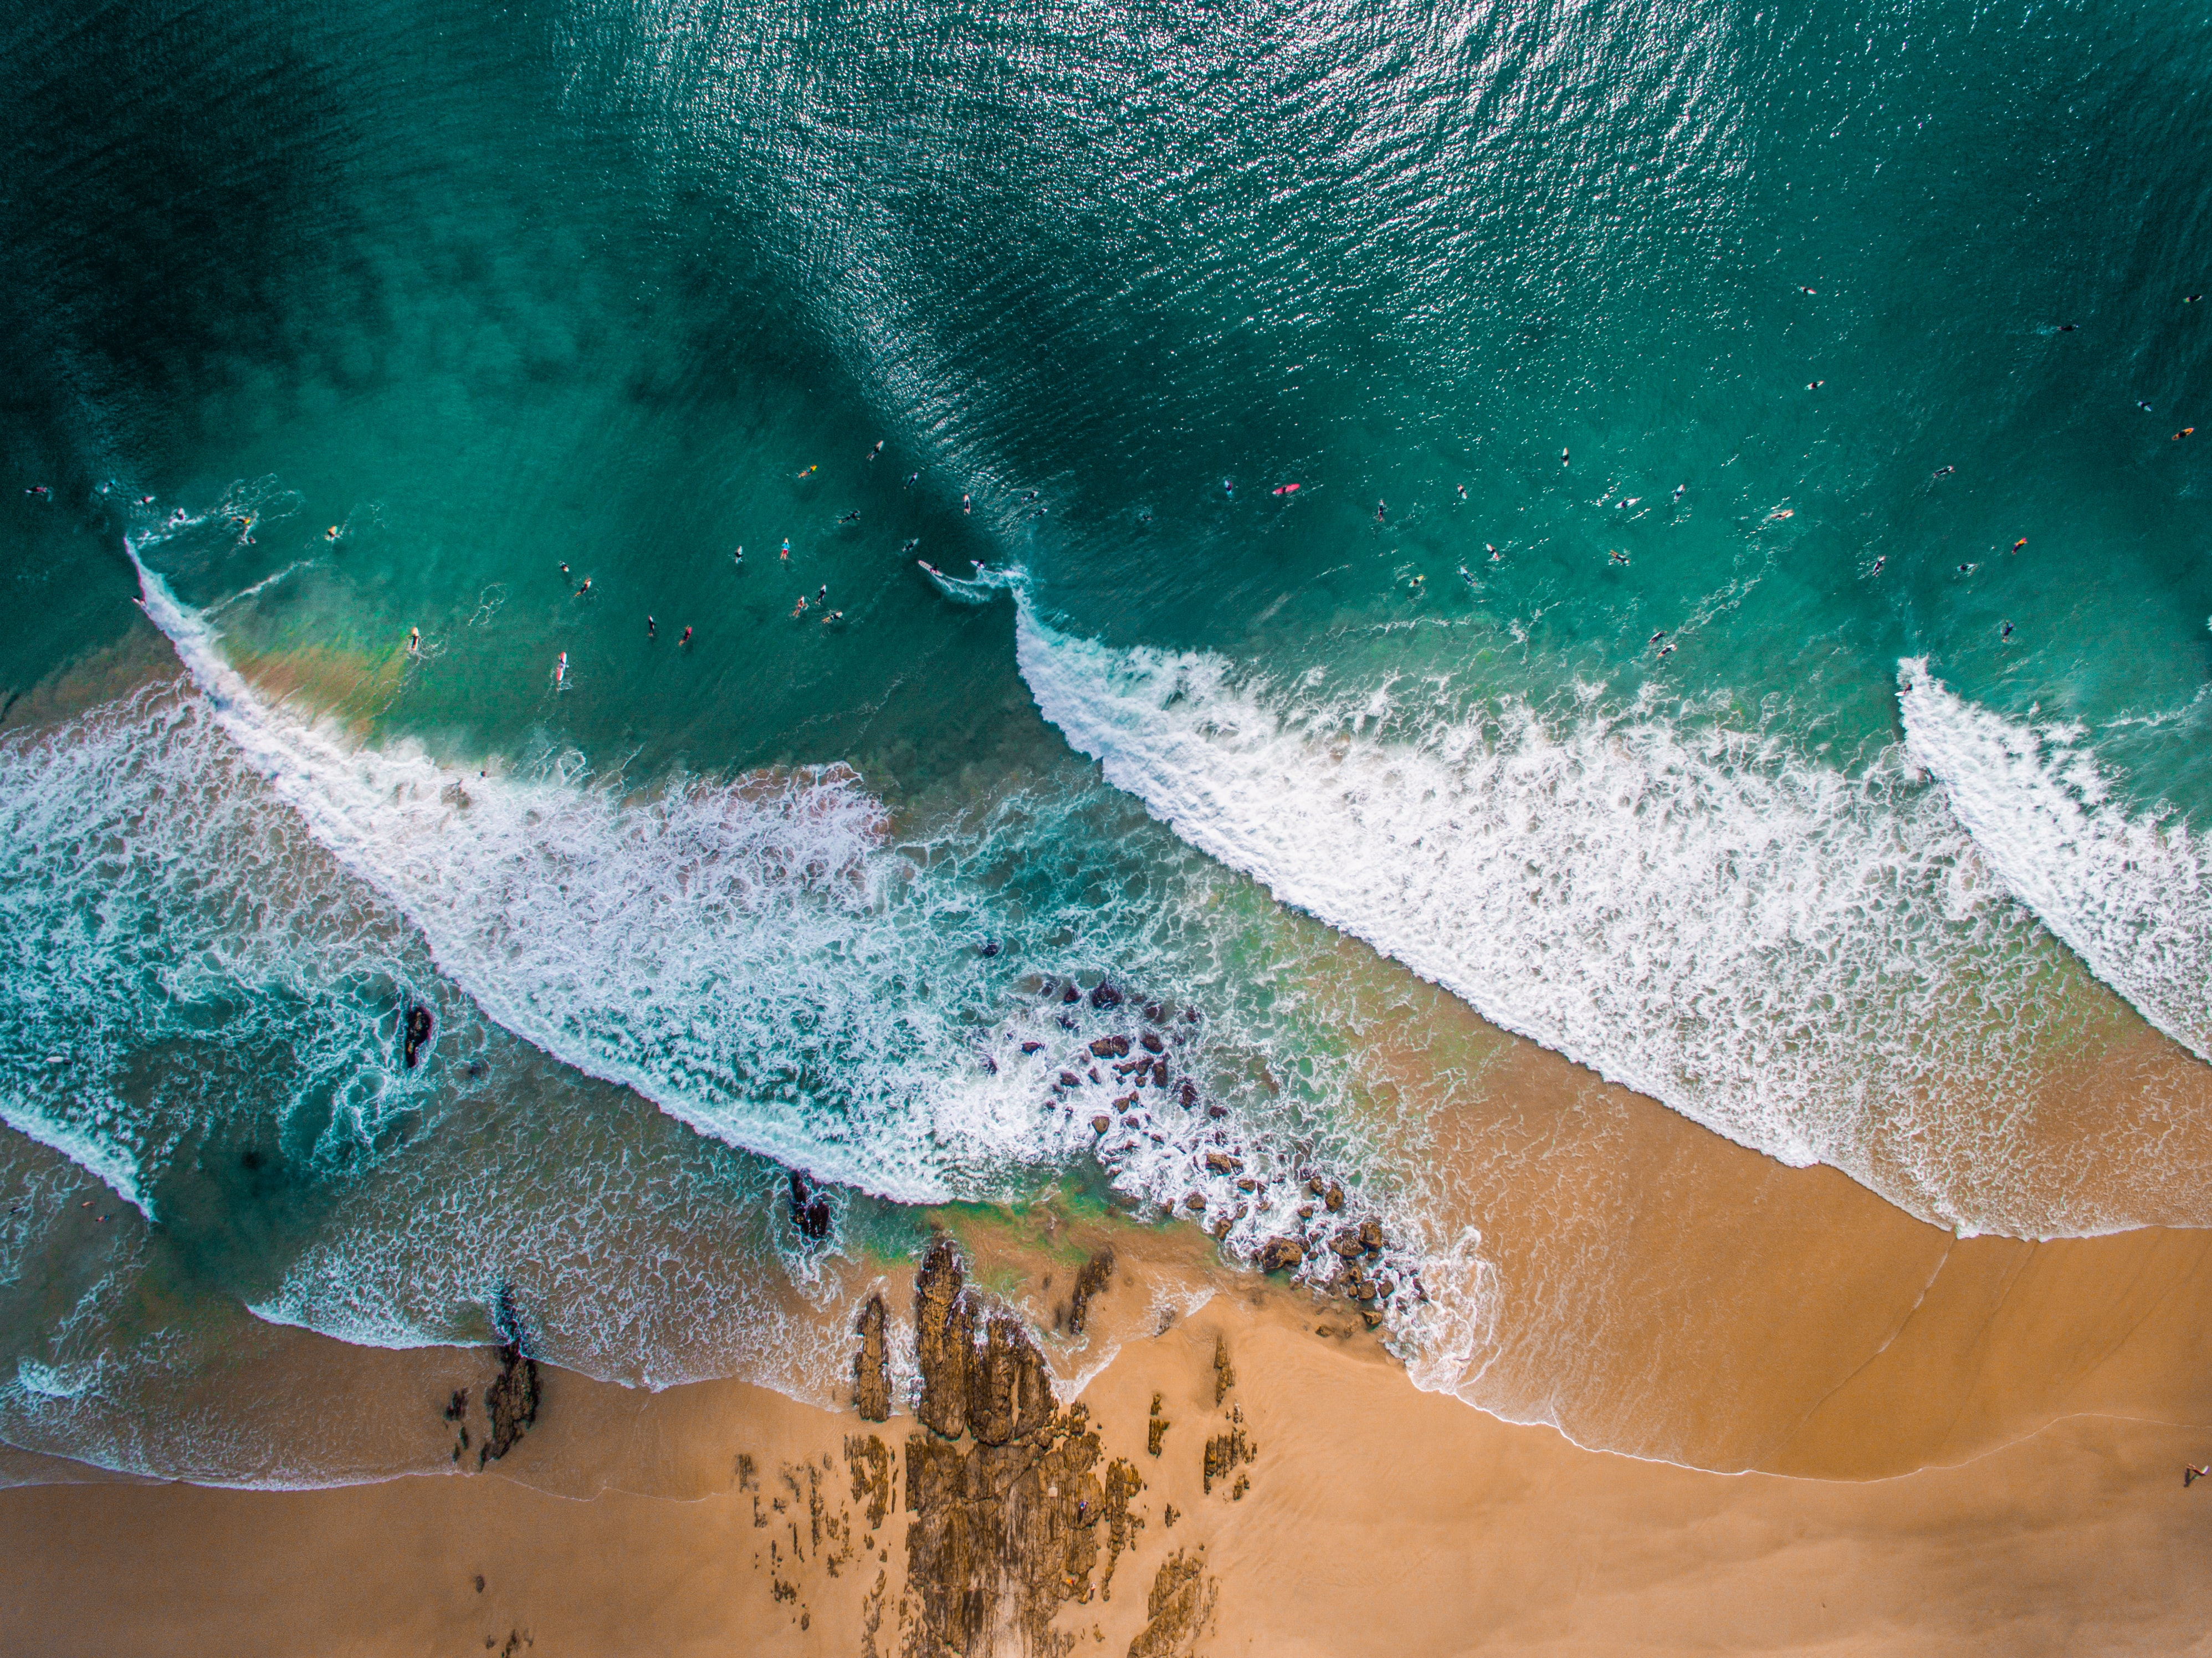 Drone aerial view of the waves crashing on the sand beach at Snapper Rocks Road